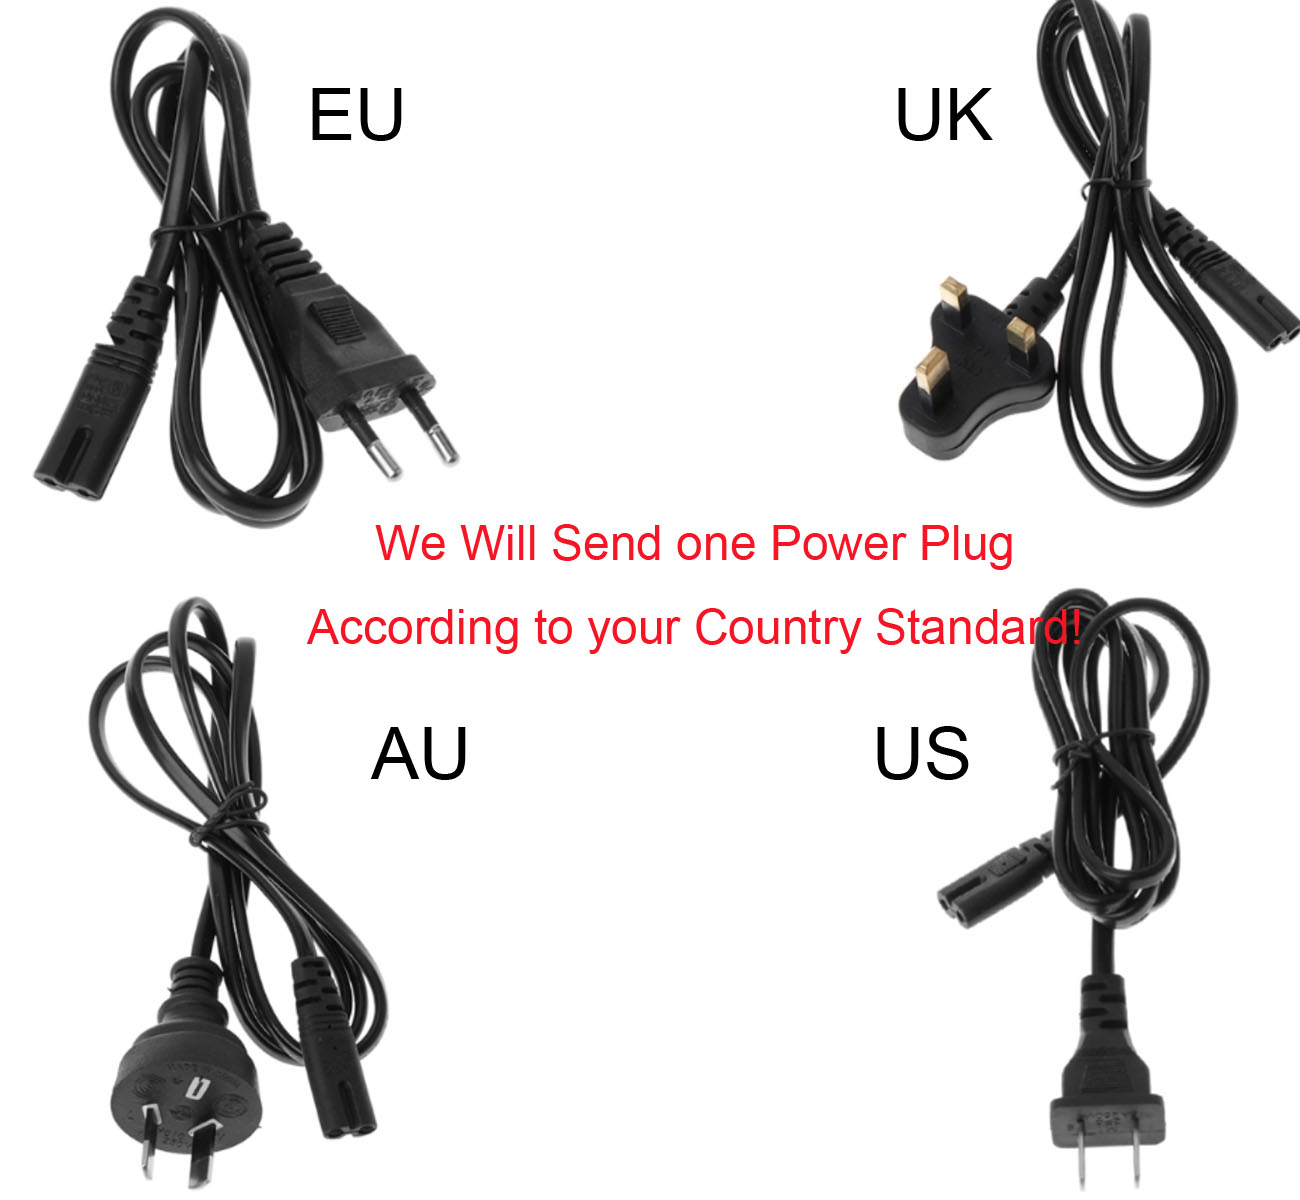 DSR-PD177P DVCAM Camcorder DSR-PD175P DSR-PD170P DSR-PD150P AC Power Adapter Charger for Sony DSR-PD100P